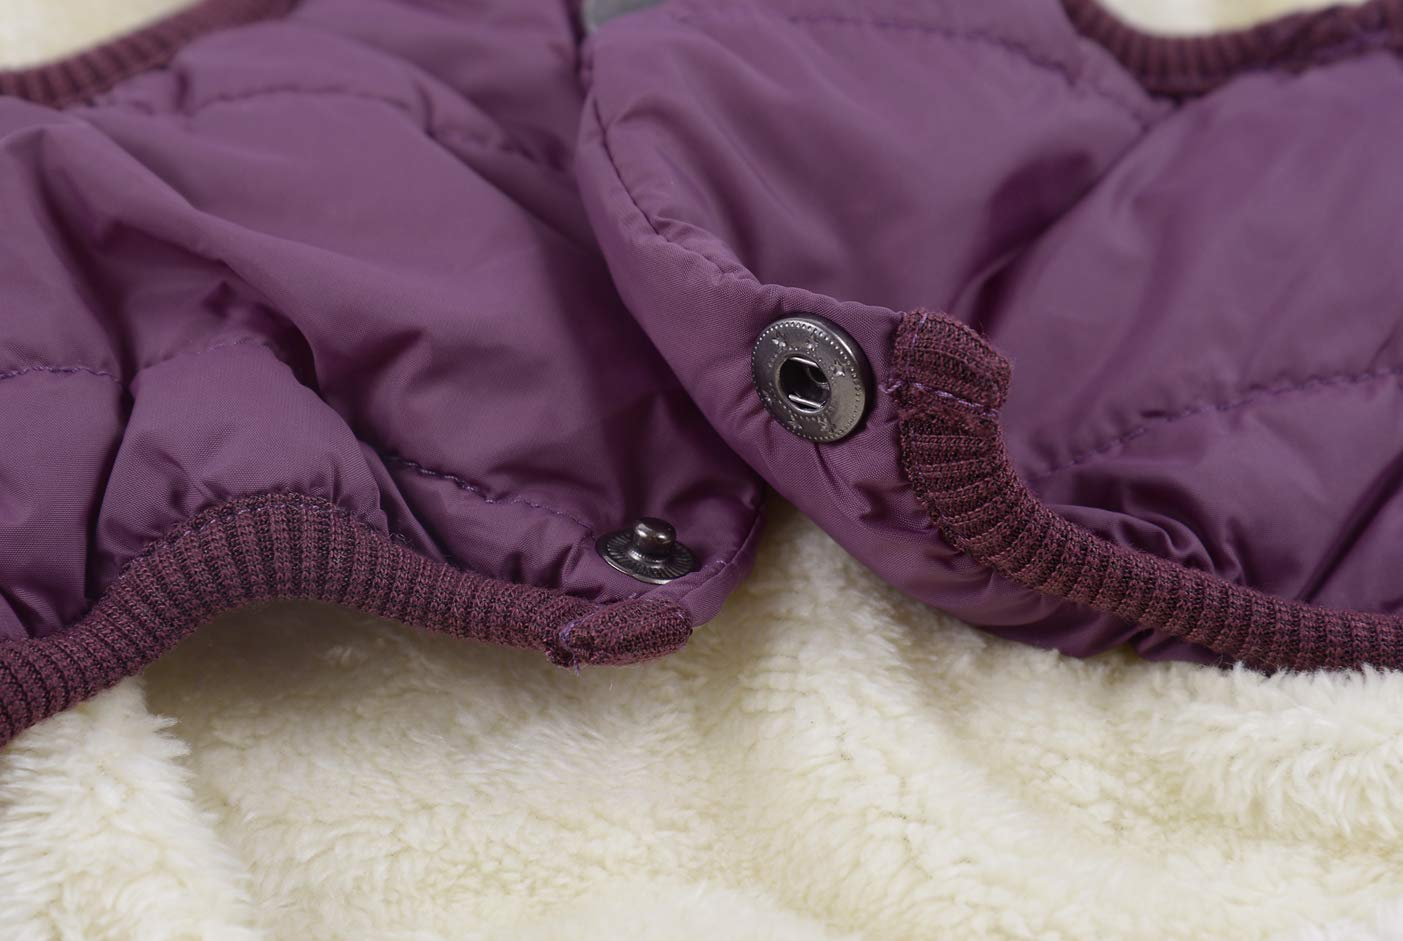 Kismaple Dog Cosy Fleece Jacket Winter Lined Coat Clothes Warm Padded for Small Medium Large Dogs 5